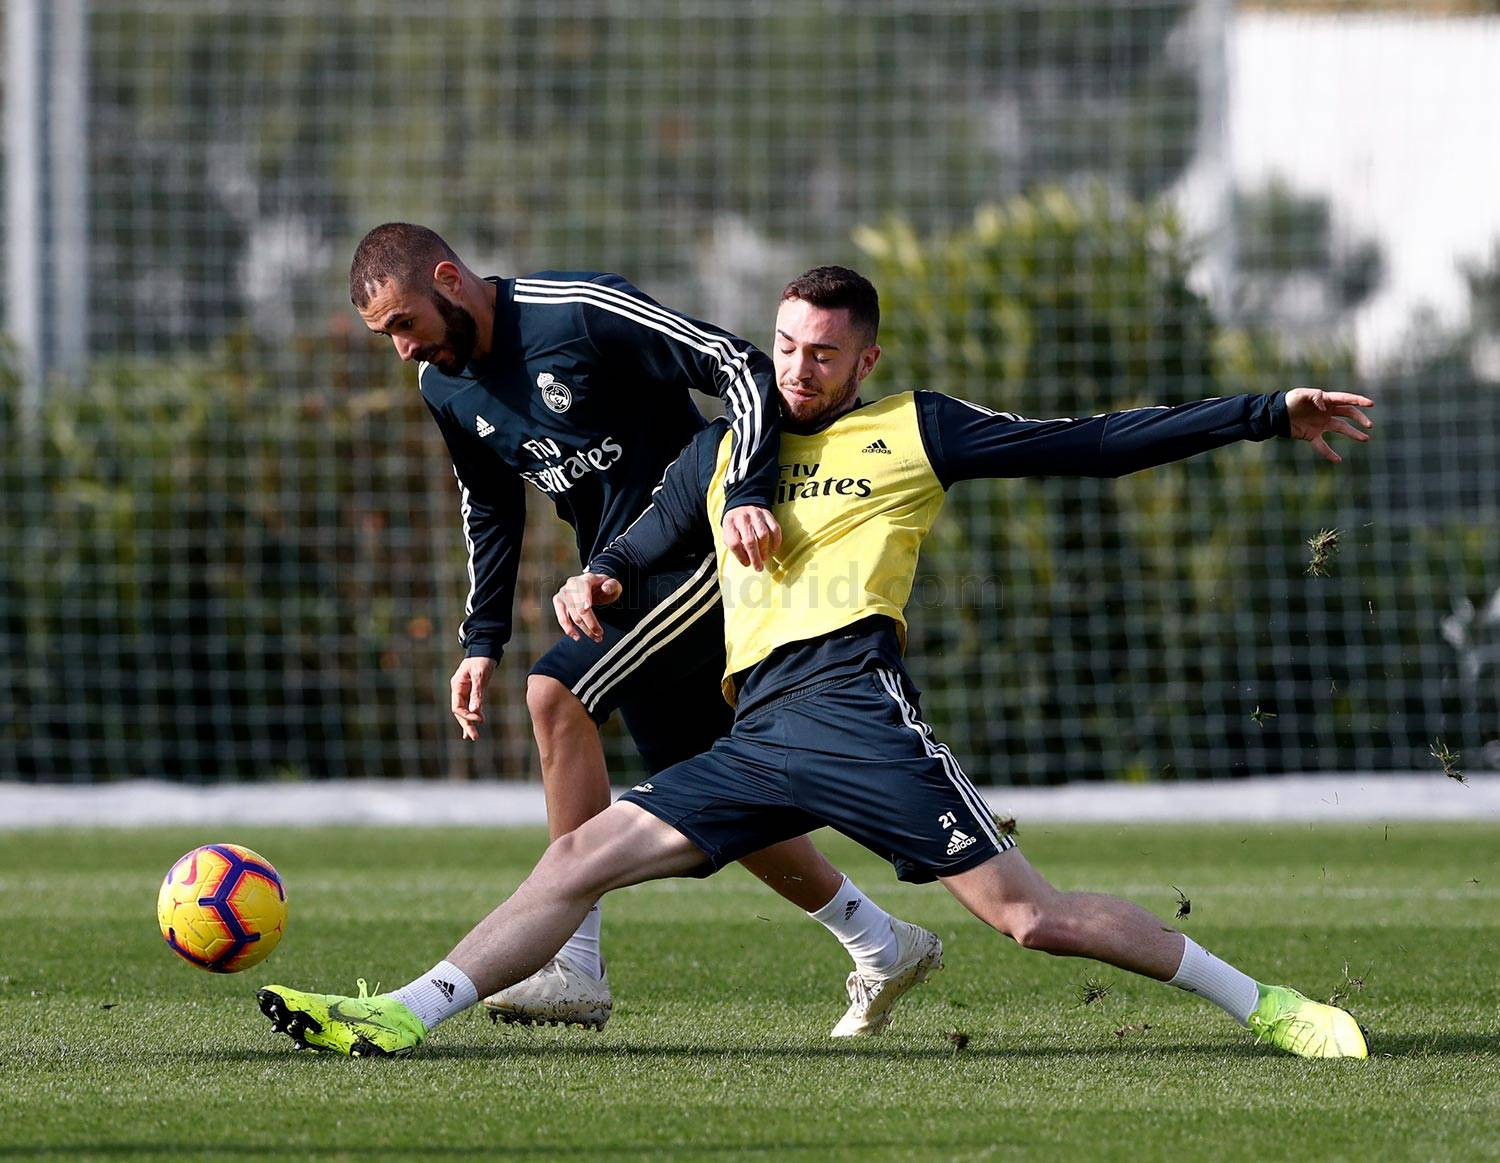 Real Madrid - Entrenamiento del Real Madrid - 15-11-2018